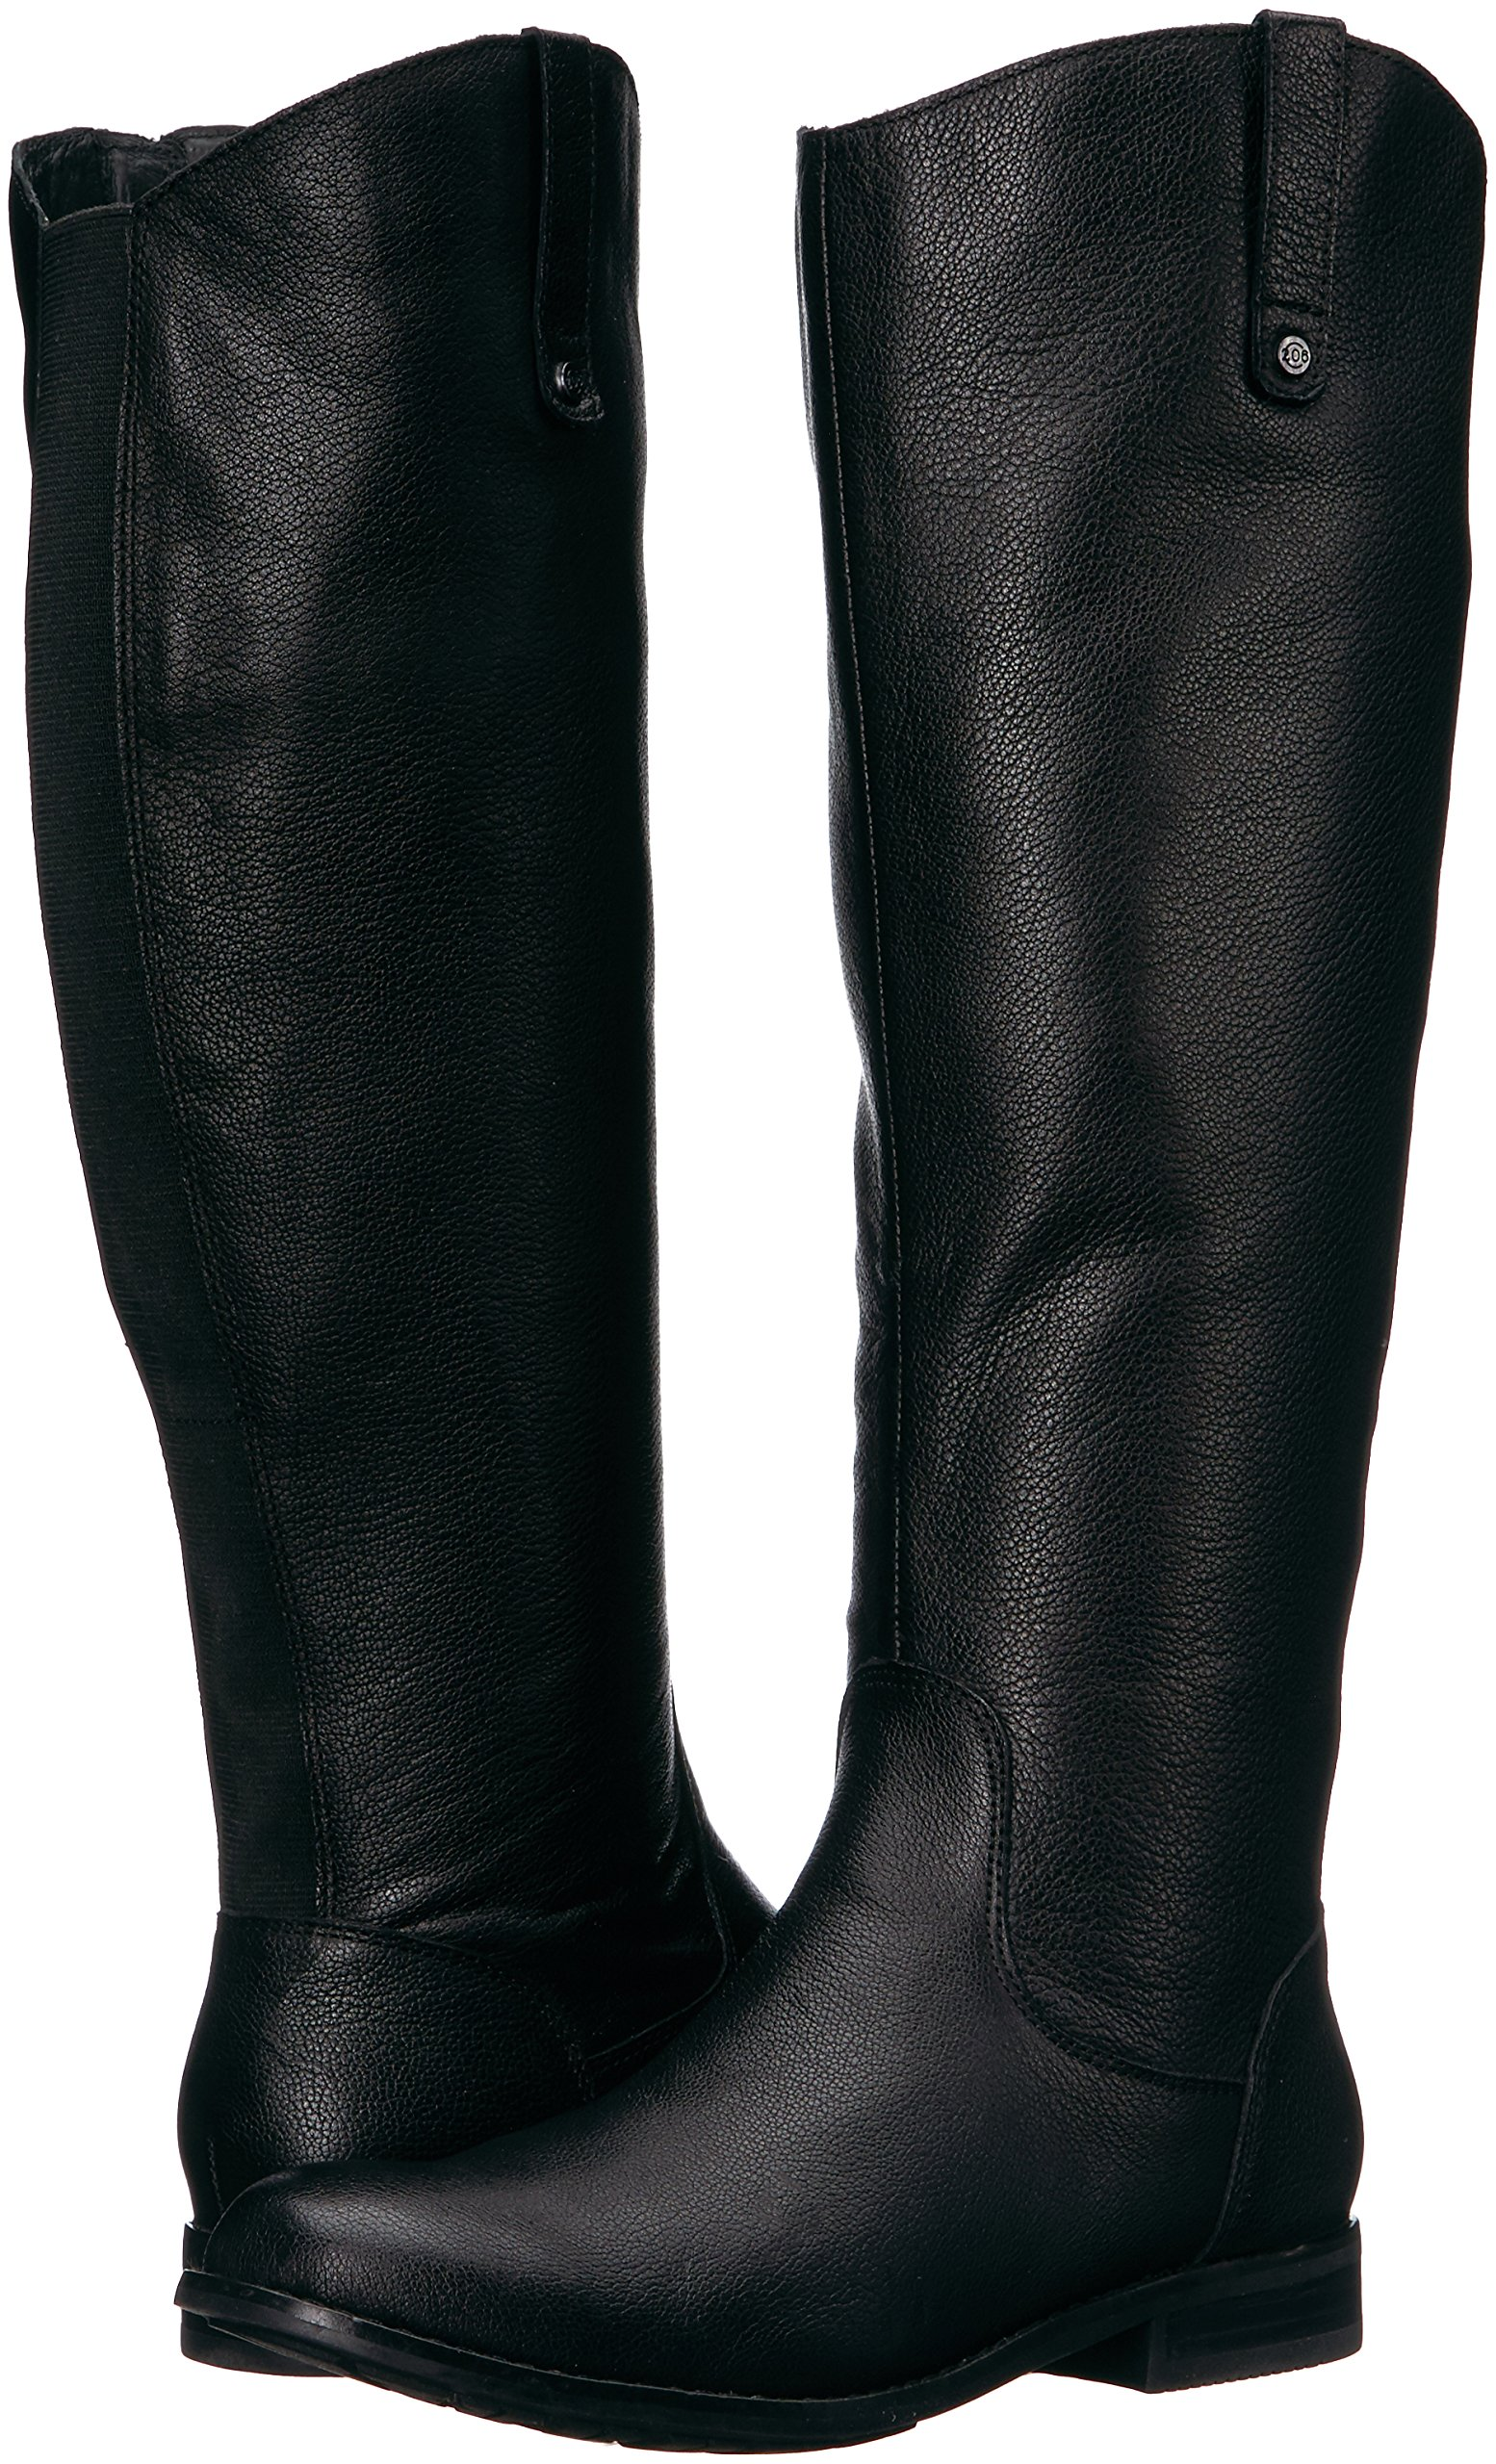 206 Collective Women's Whidbey Riding Boot, Black, 6.5 B US by 206 Collective (Image #6)